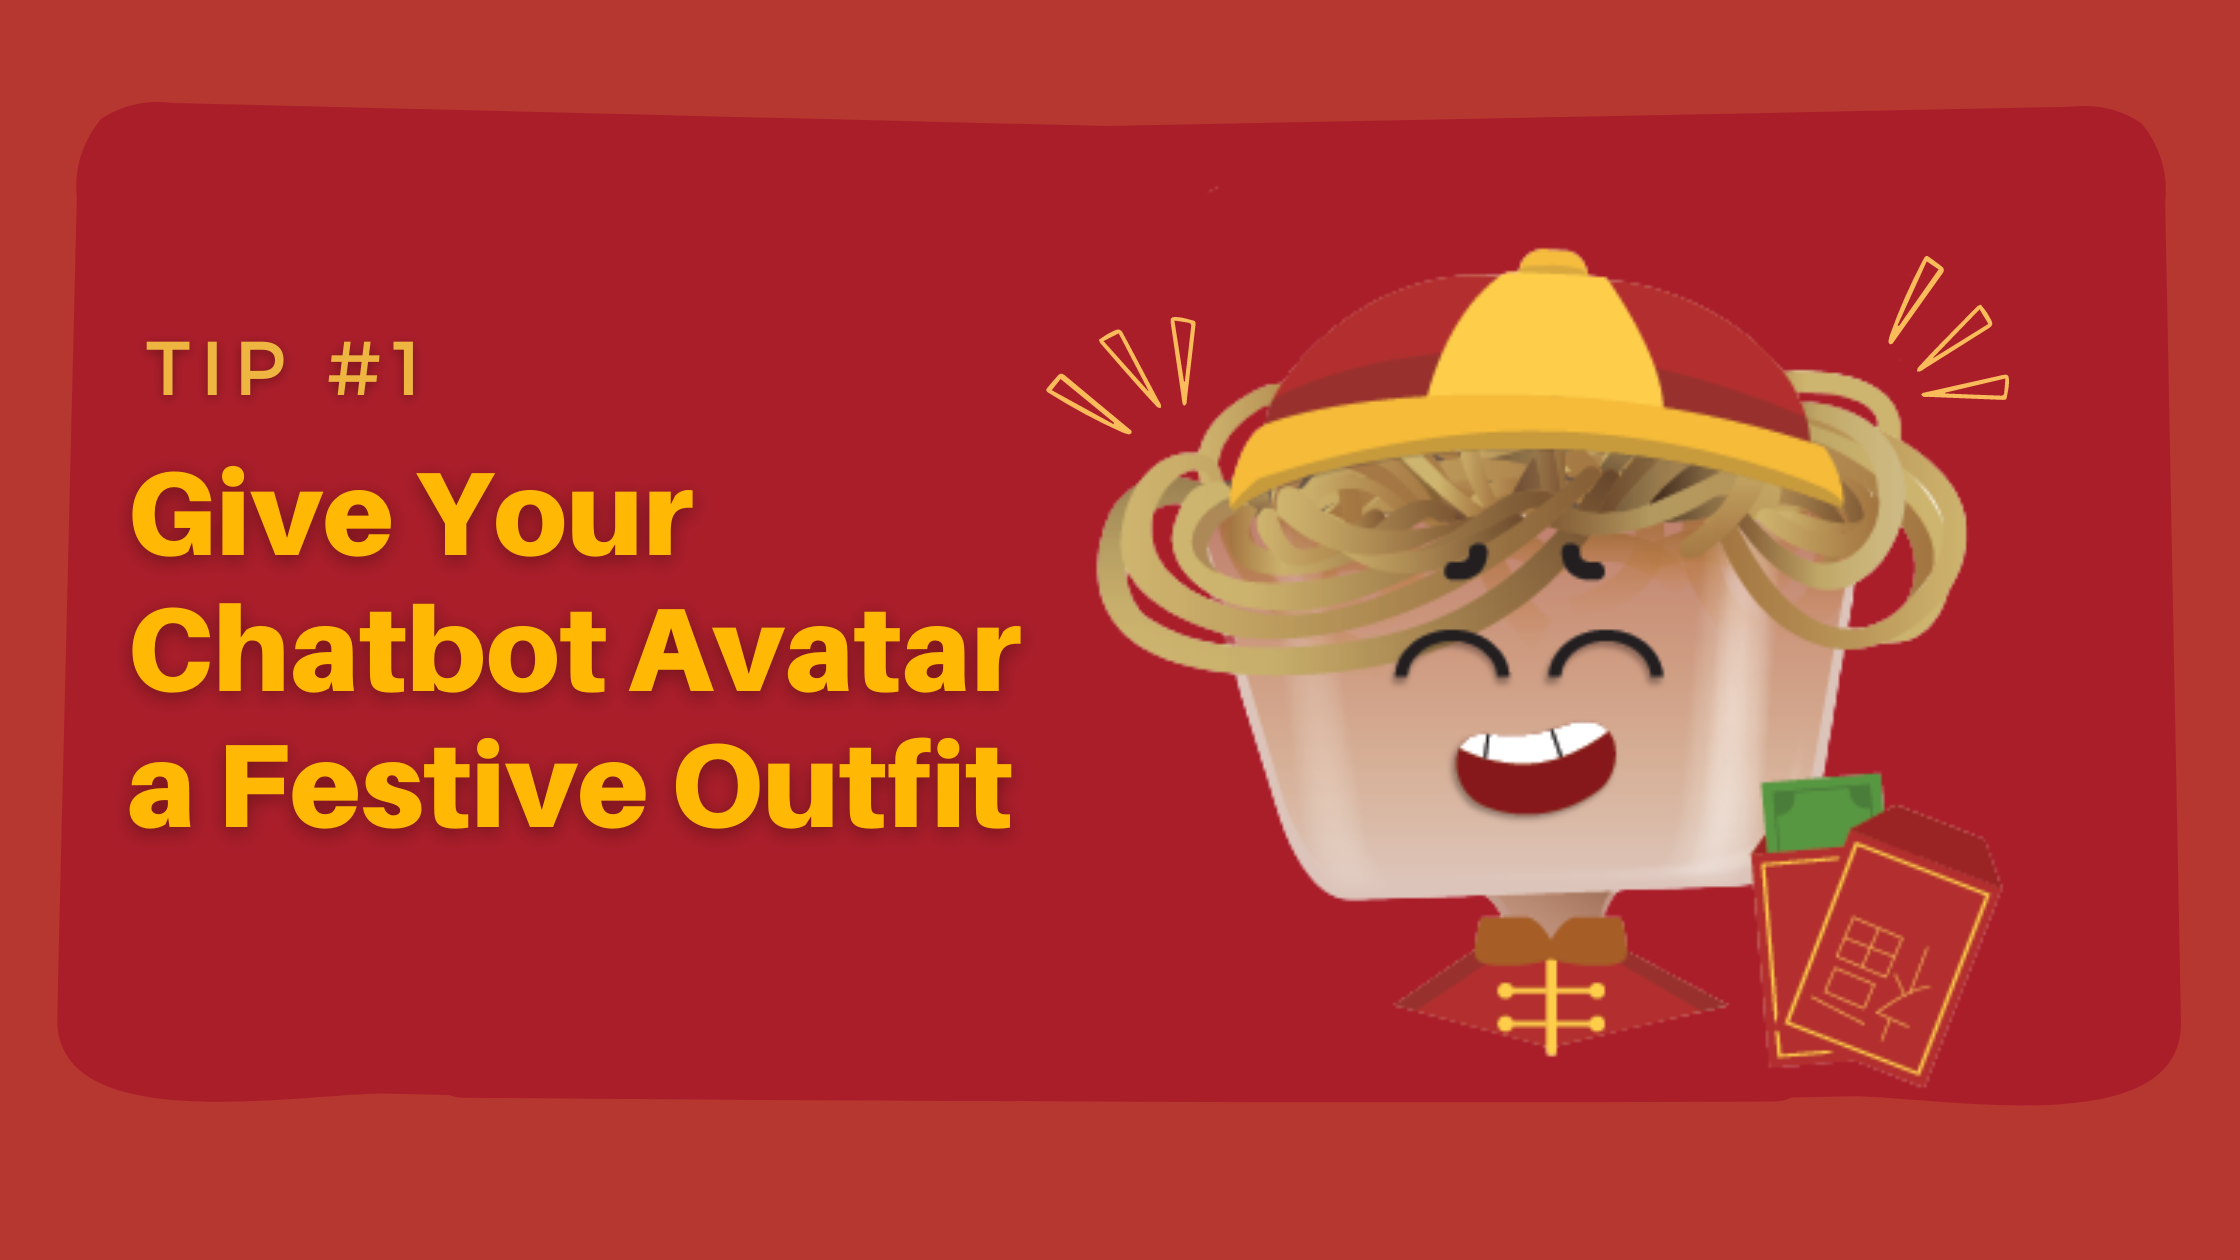 Prepare Your Chatbot for Chinese New Year - give your avatar a festive outfit